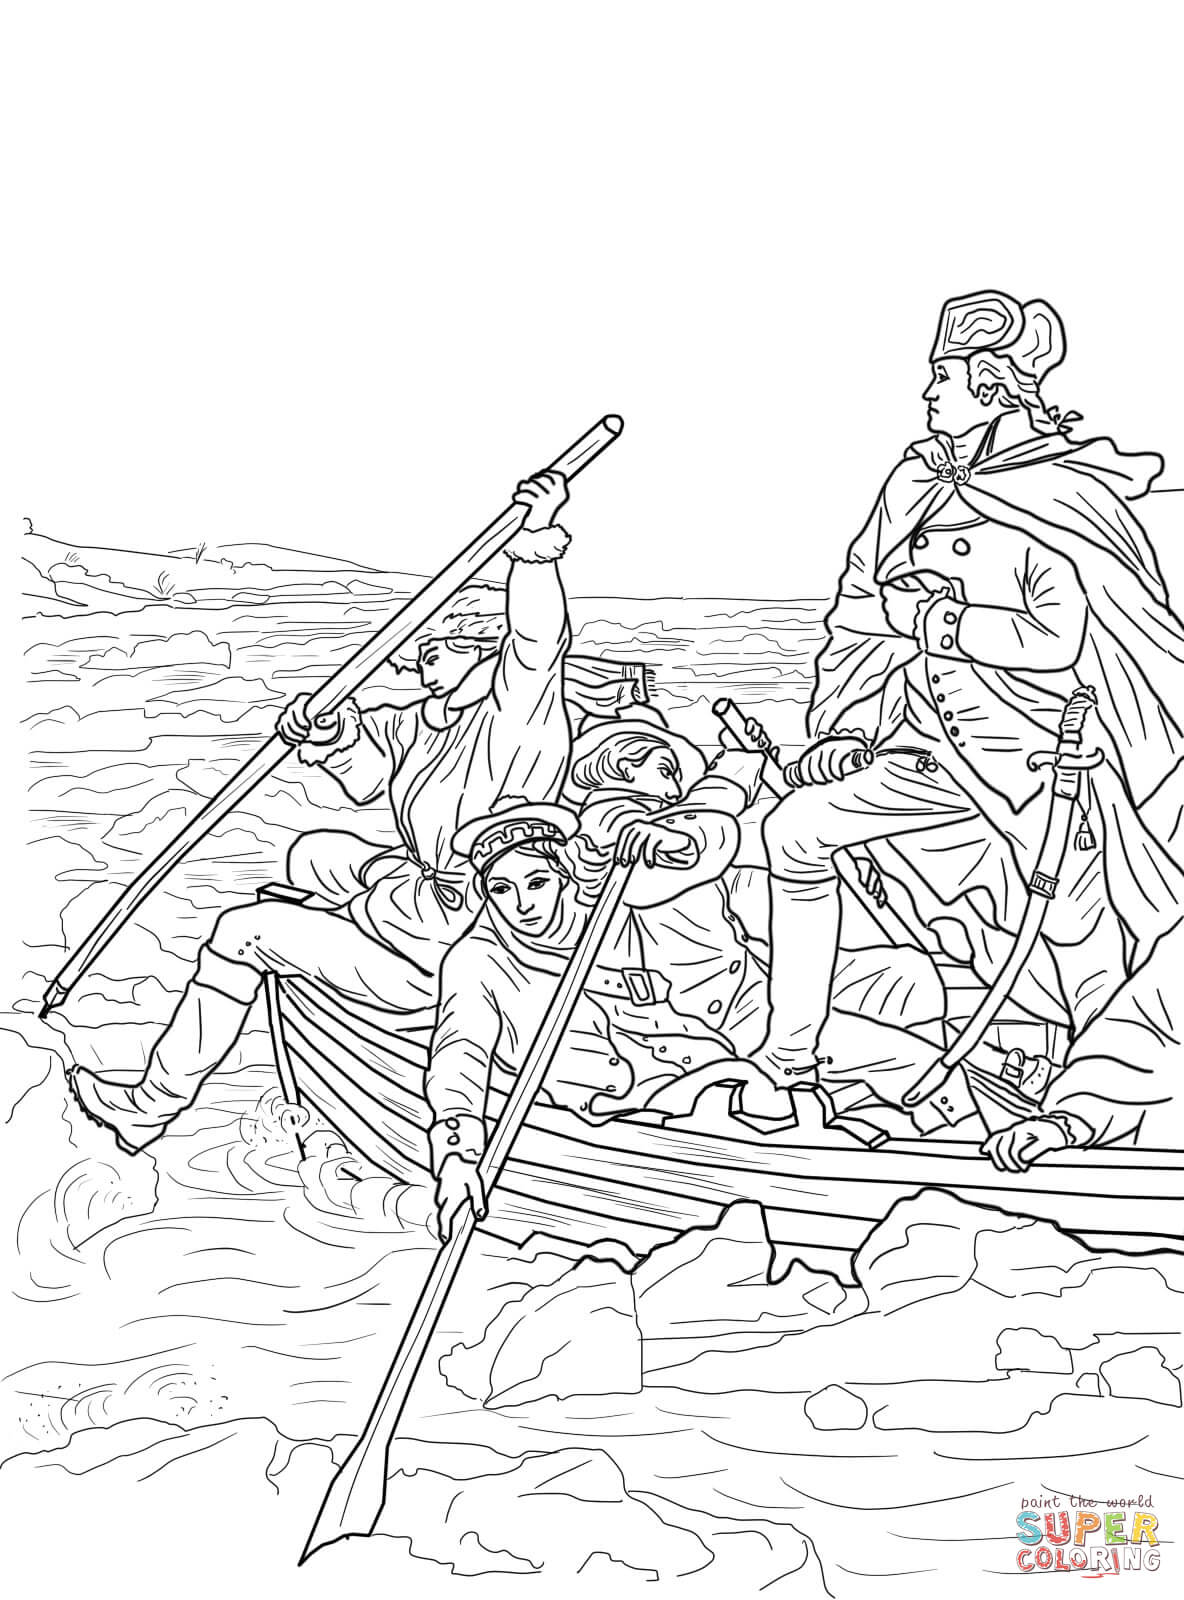 american revolution coloring pages printable - photo#32